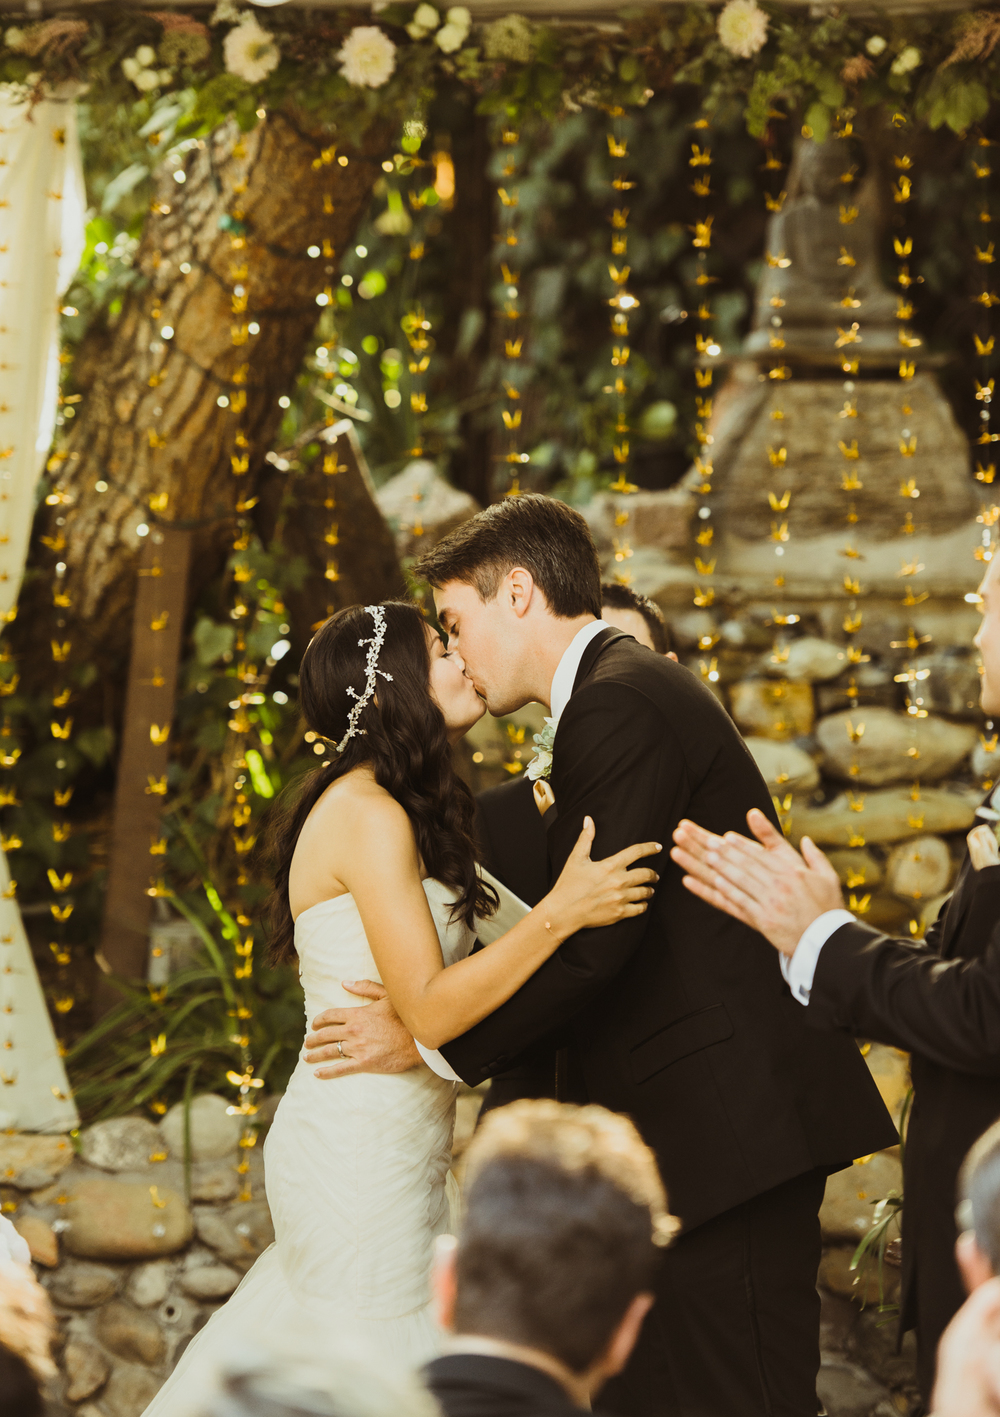 ©Isaiah & Taylor Photography - Inn of the Seventh Ray Wedding, Topanga Canyon California-86.jpg